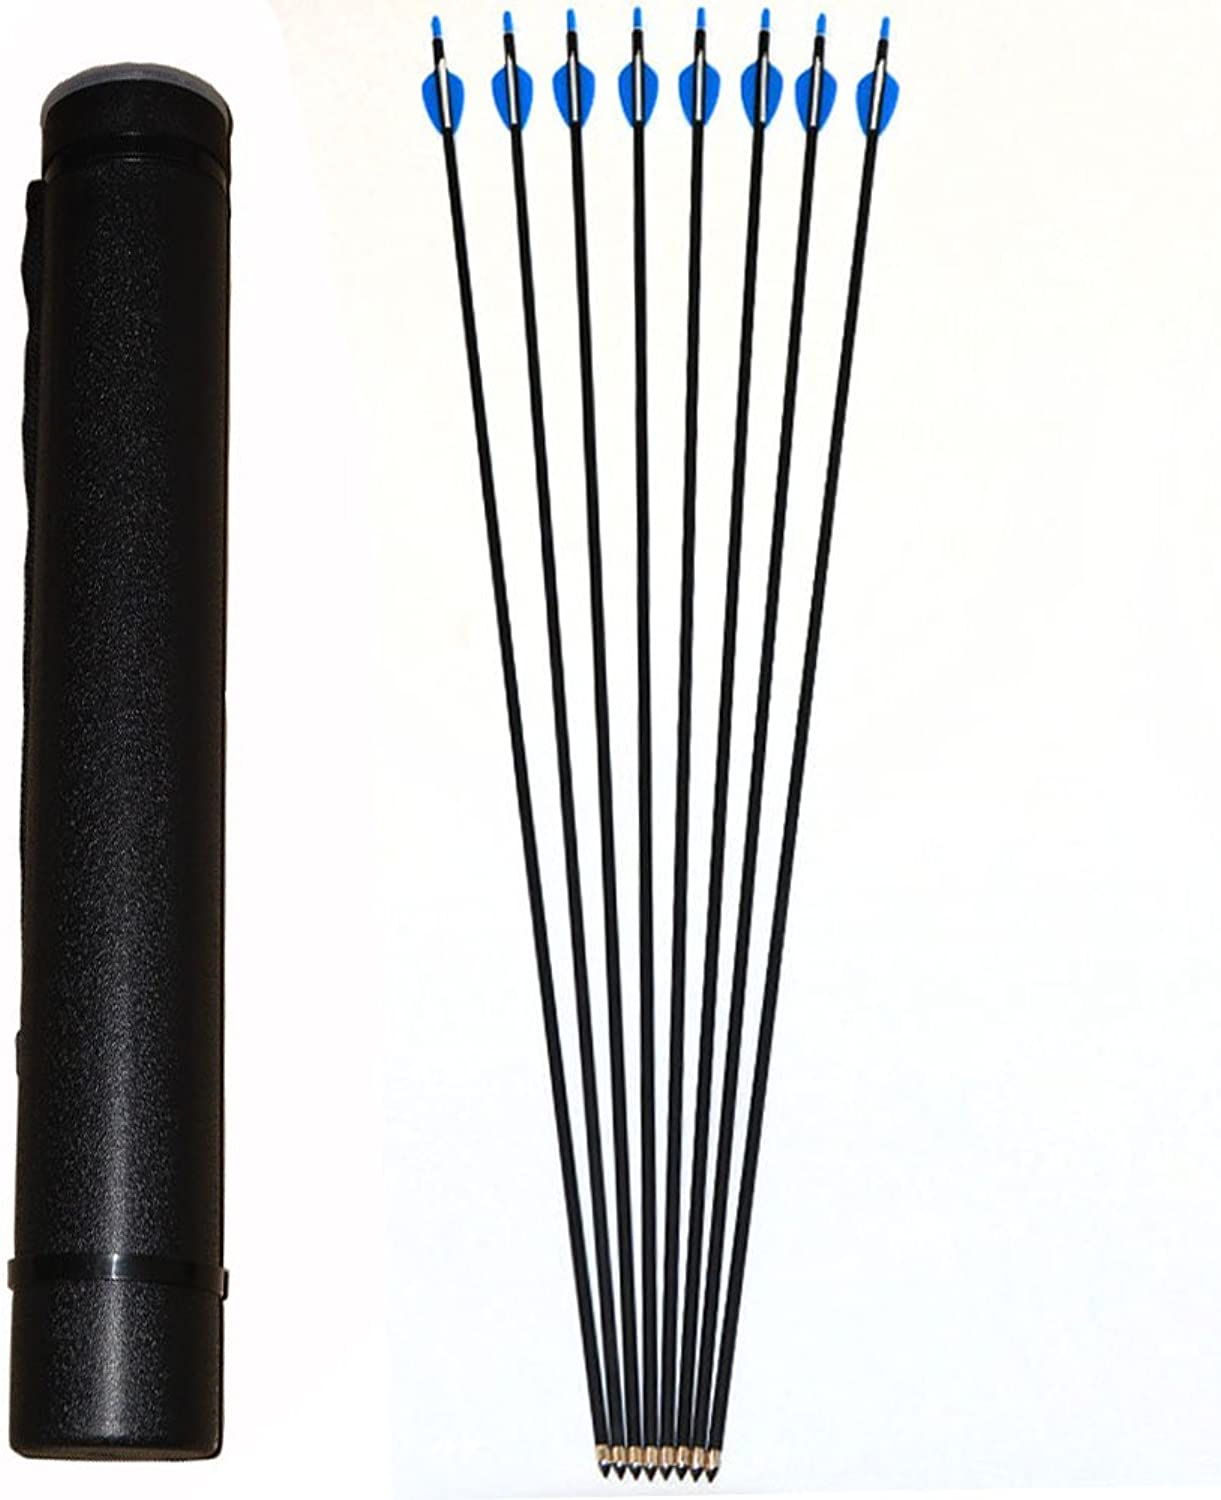 6mm Carbon Arrows Target Shooting Arrows With Black Archery Quiver Tube